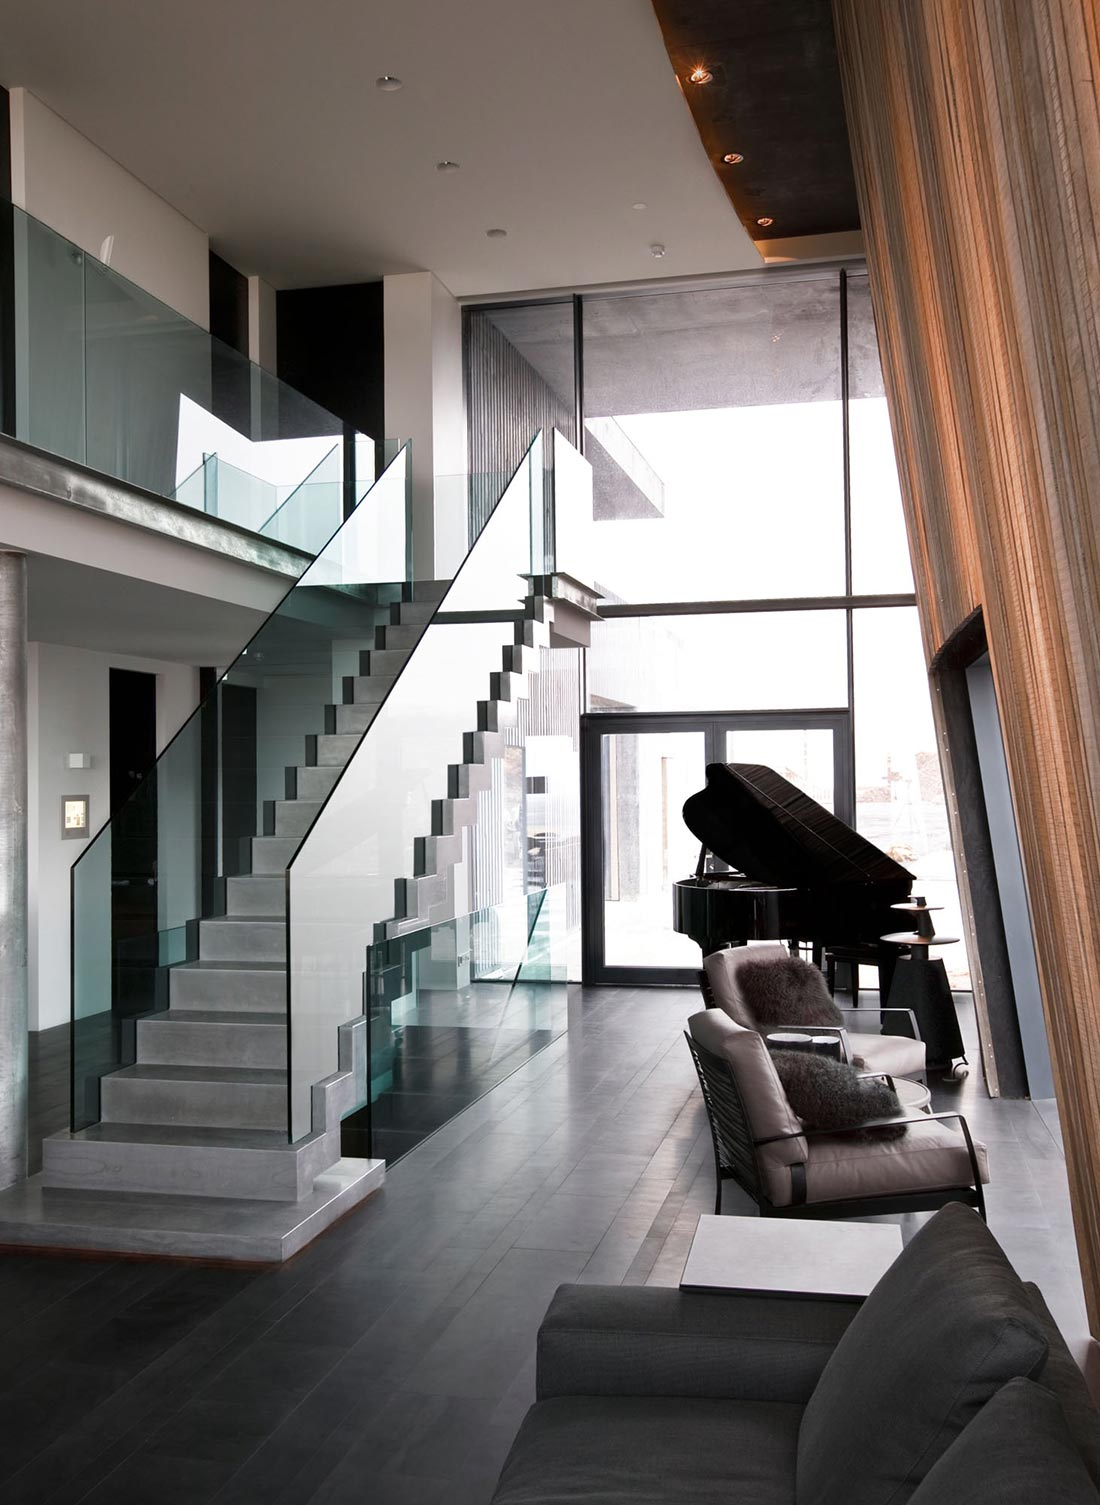 Living Space, Glass Stairs, Vacation Home in Iceland Inspired by Nature